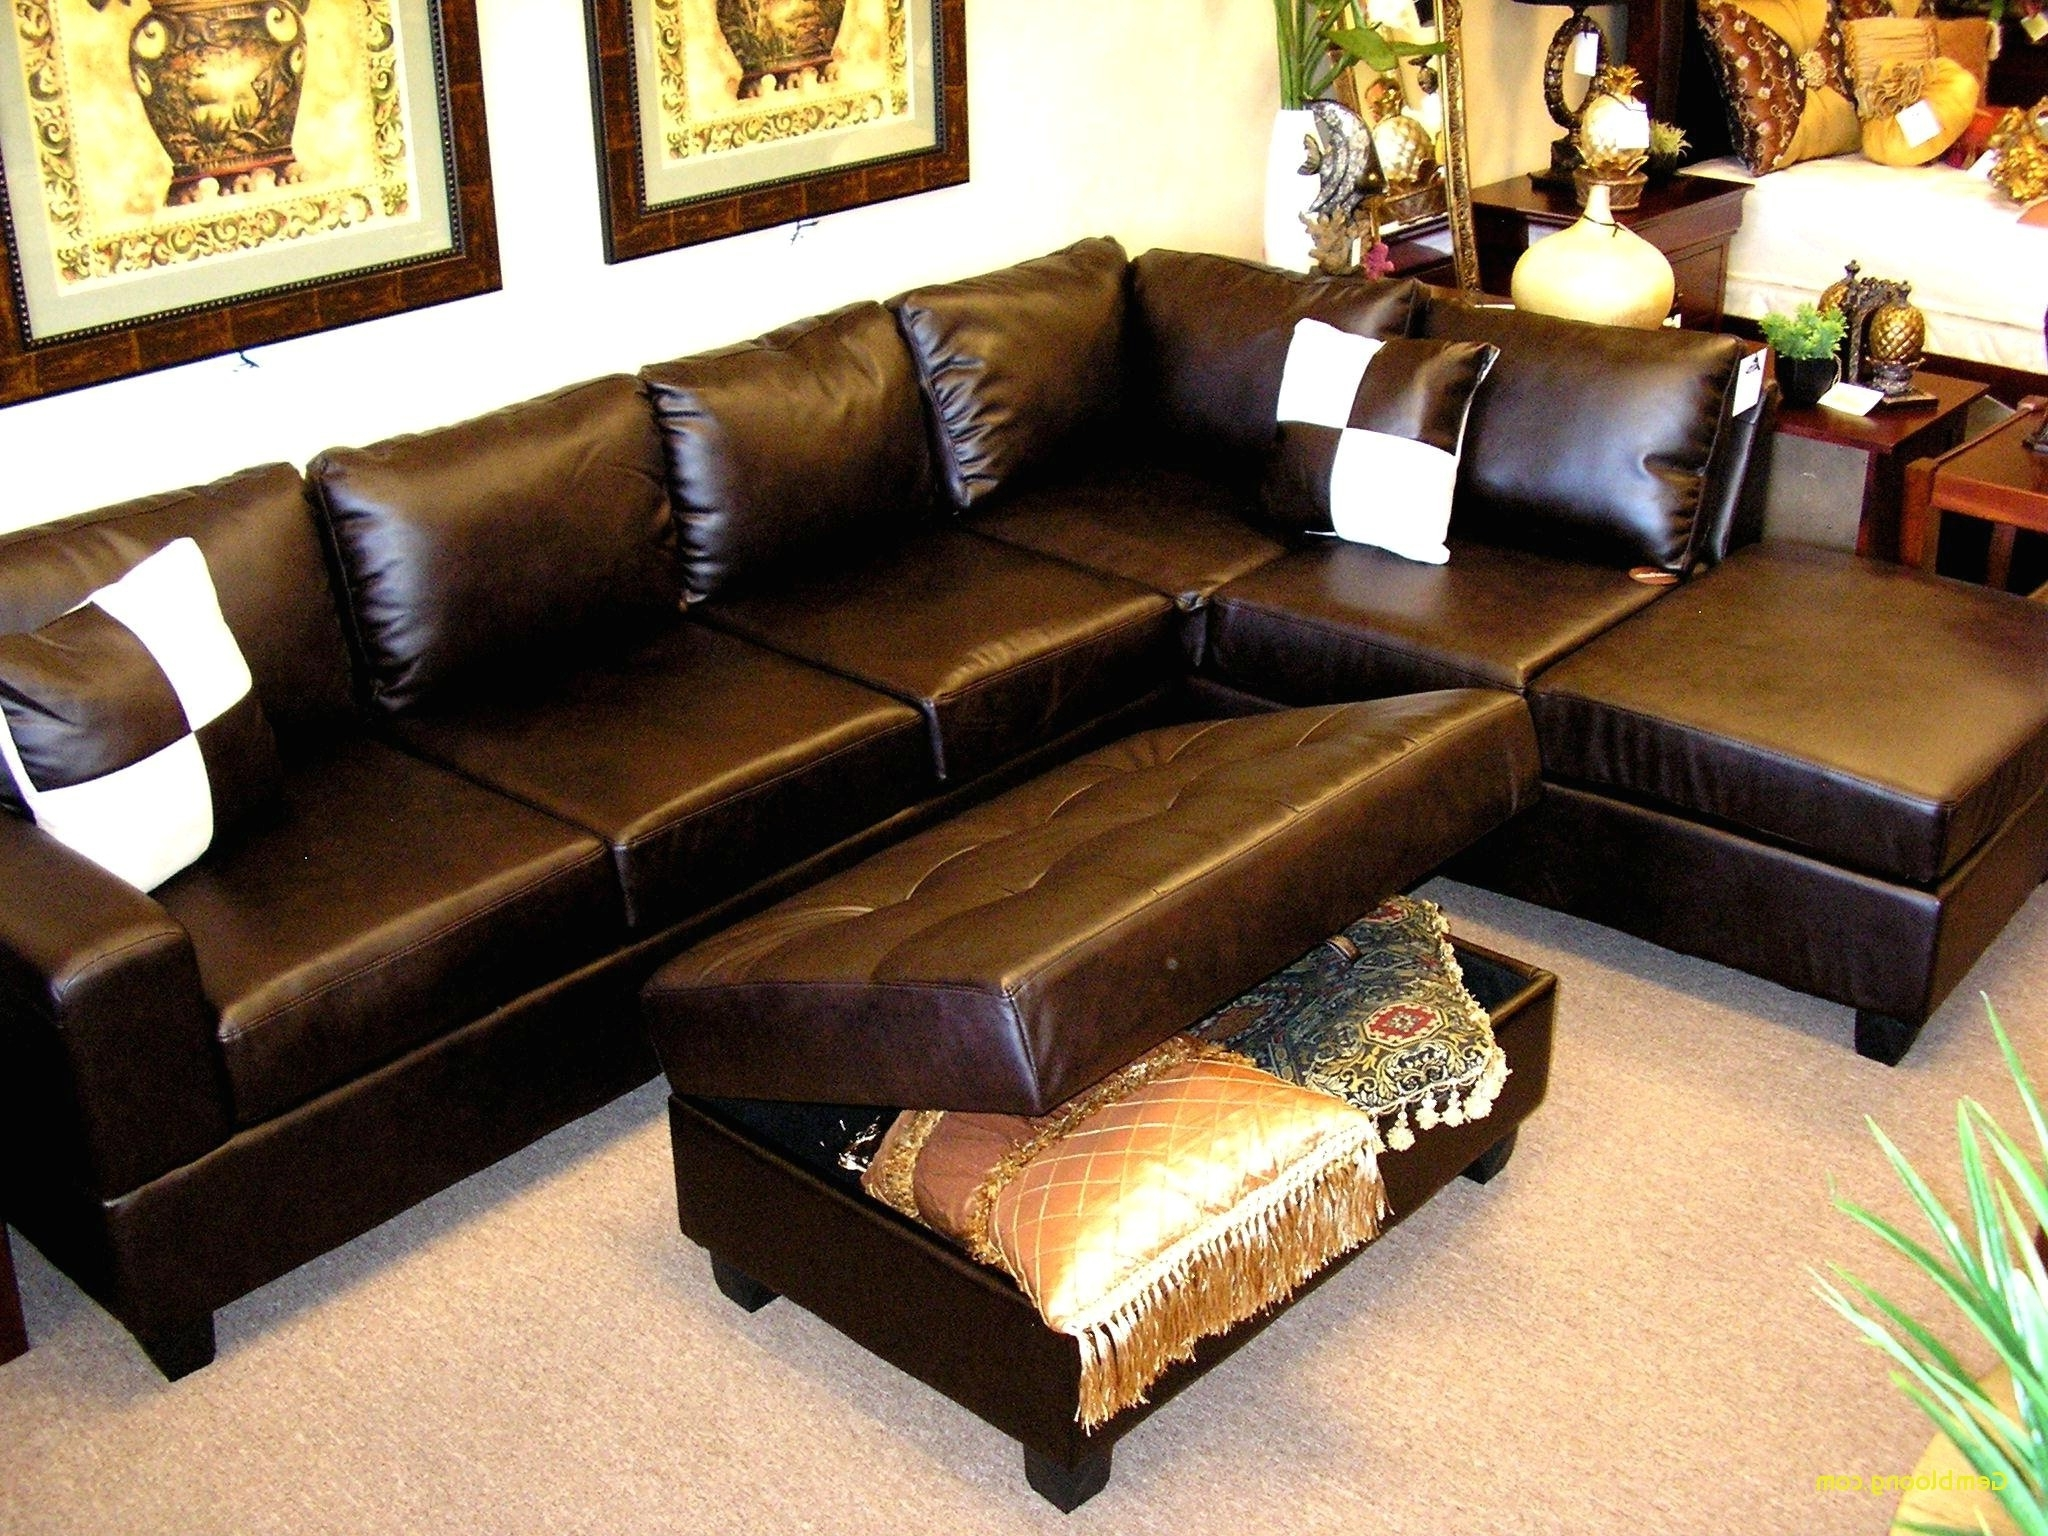 Preferred Sectional Sofas With Chaise Lounge And Ottoman Pertaining To Chaise Lounge With Ottoman Luxury Furniture Black Leather Tufted (View 7 of 15)